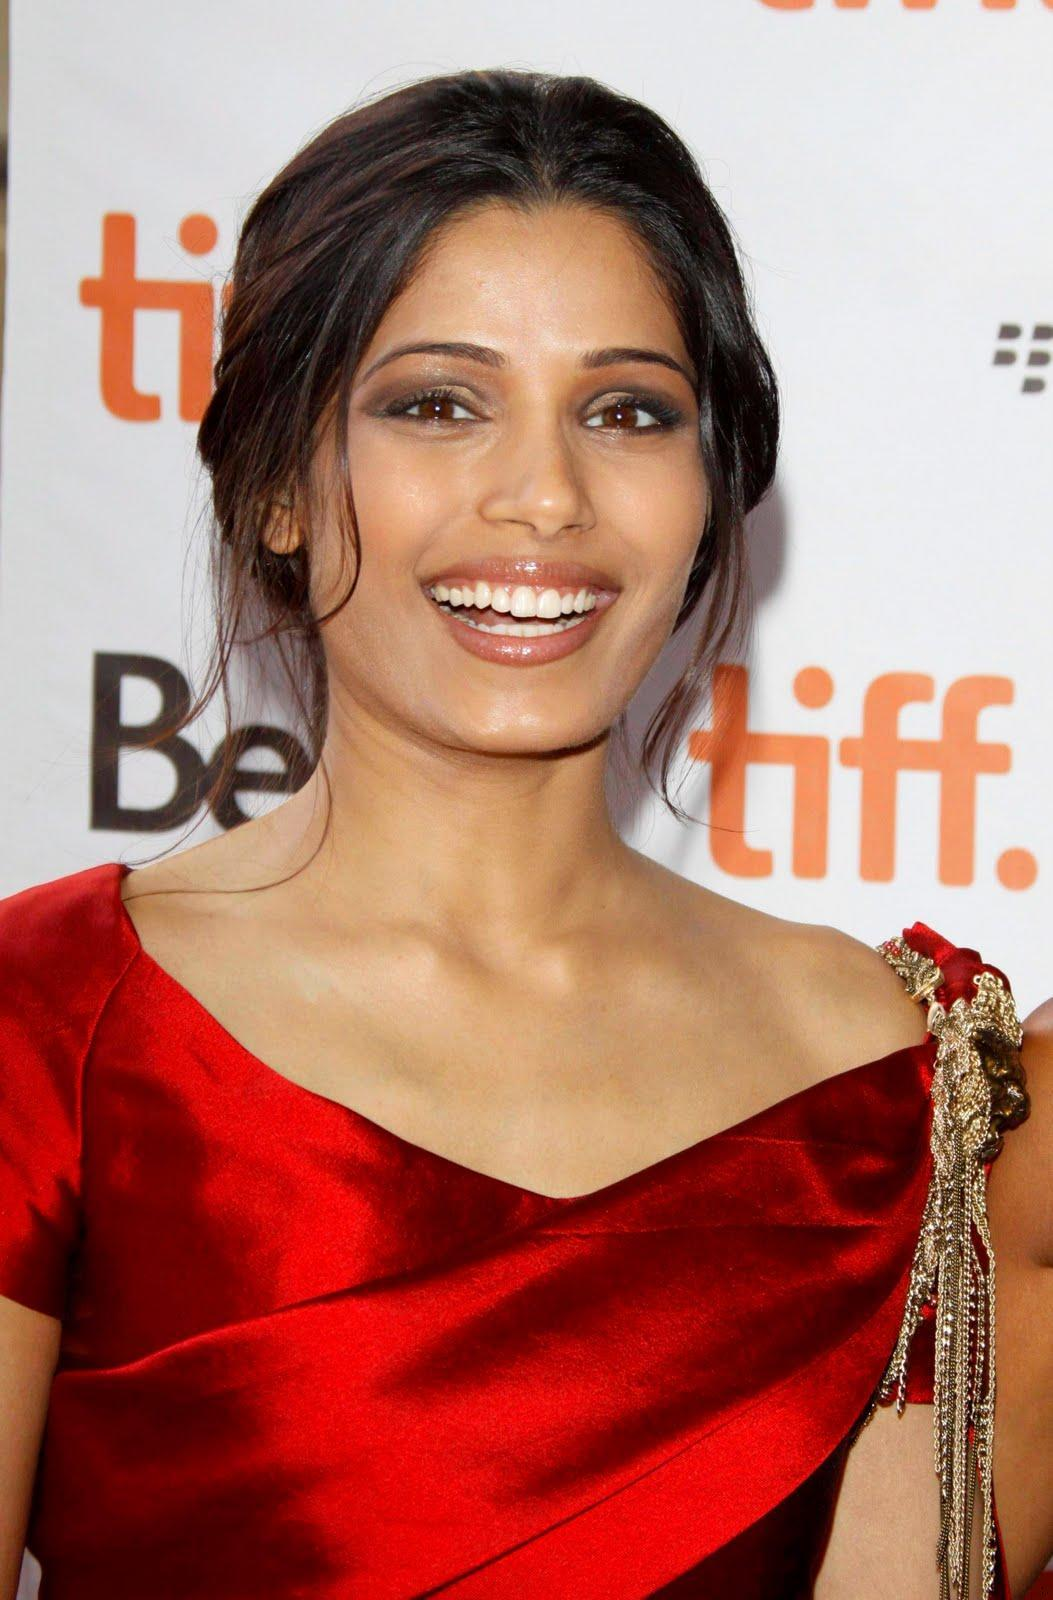 Gossip Girl Wallpapers Hd Hollywood Actress Freida Pinto Pictures Taste Wallpapers